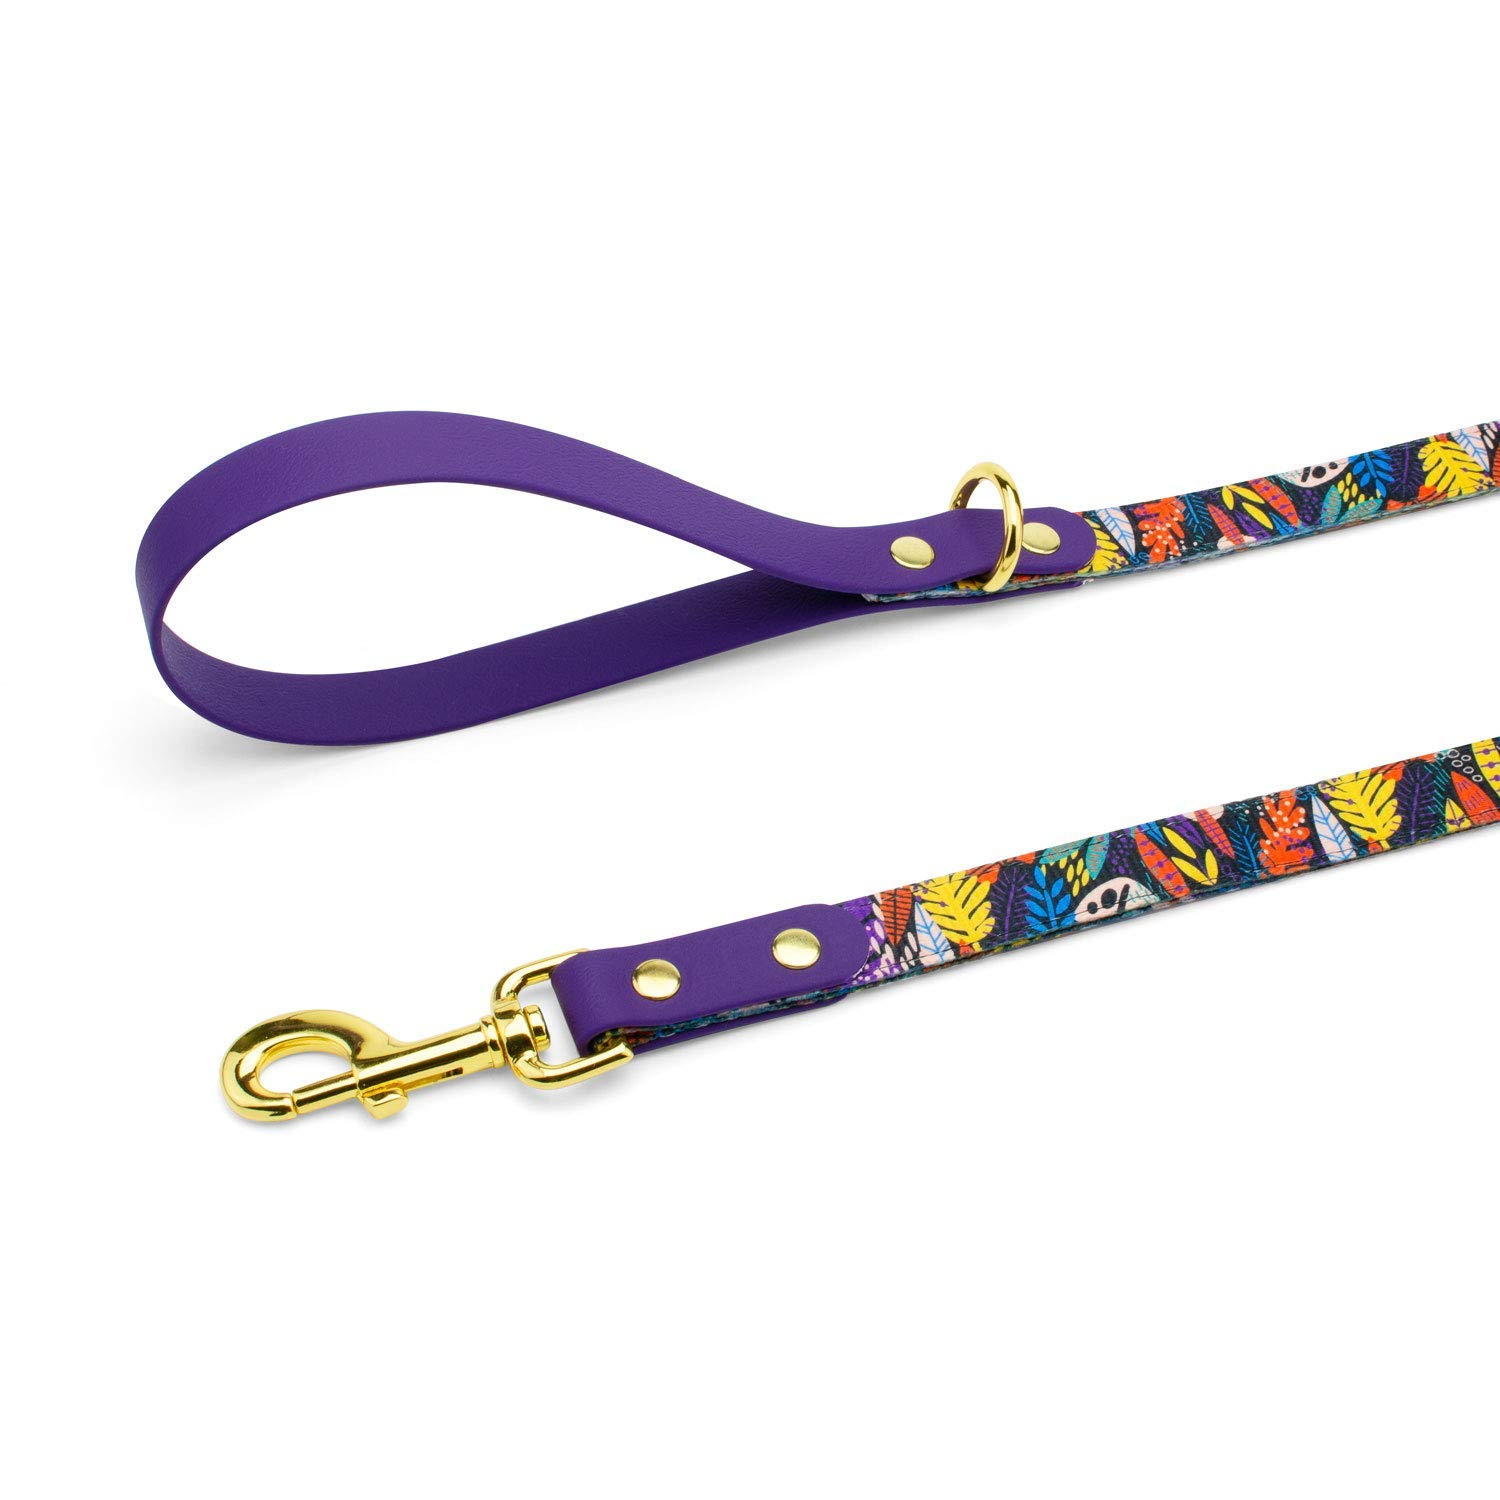 Stylish Colorful Exotic Jungle Print Walking Leash with Comfortable Waterproof Handle, Gold Metal Hardware - Handmade Designer Leashes for X-Small, Medium, Large Dogs